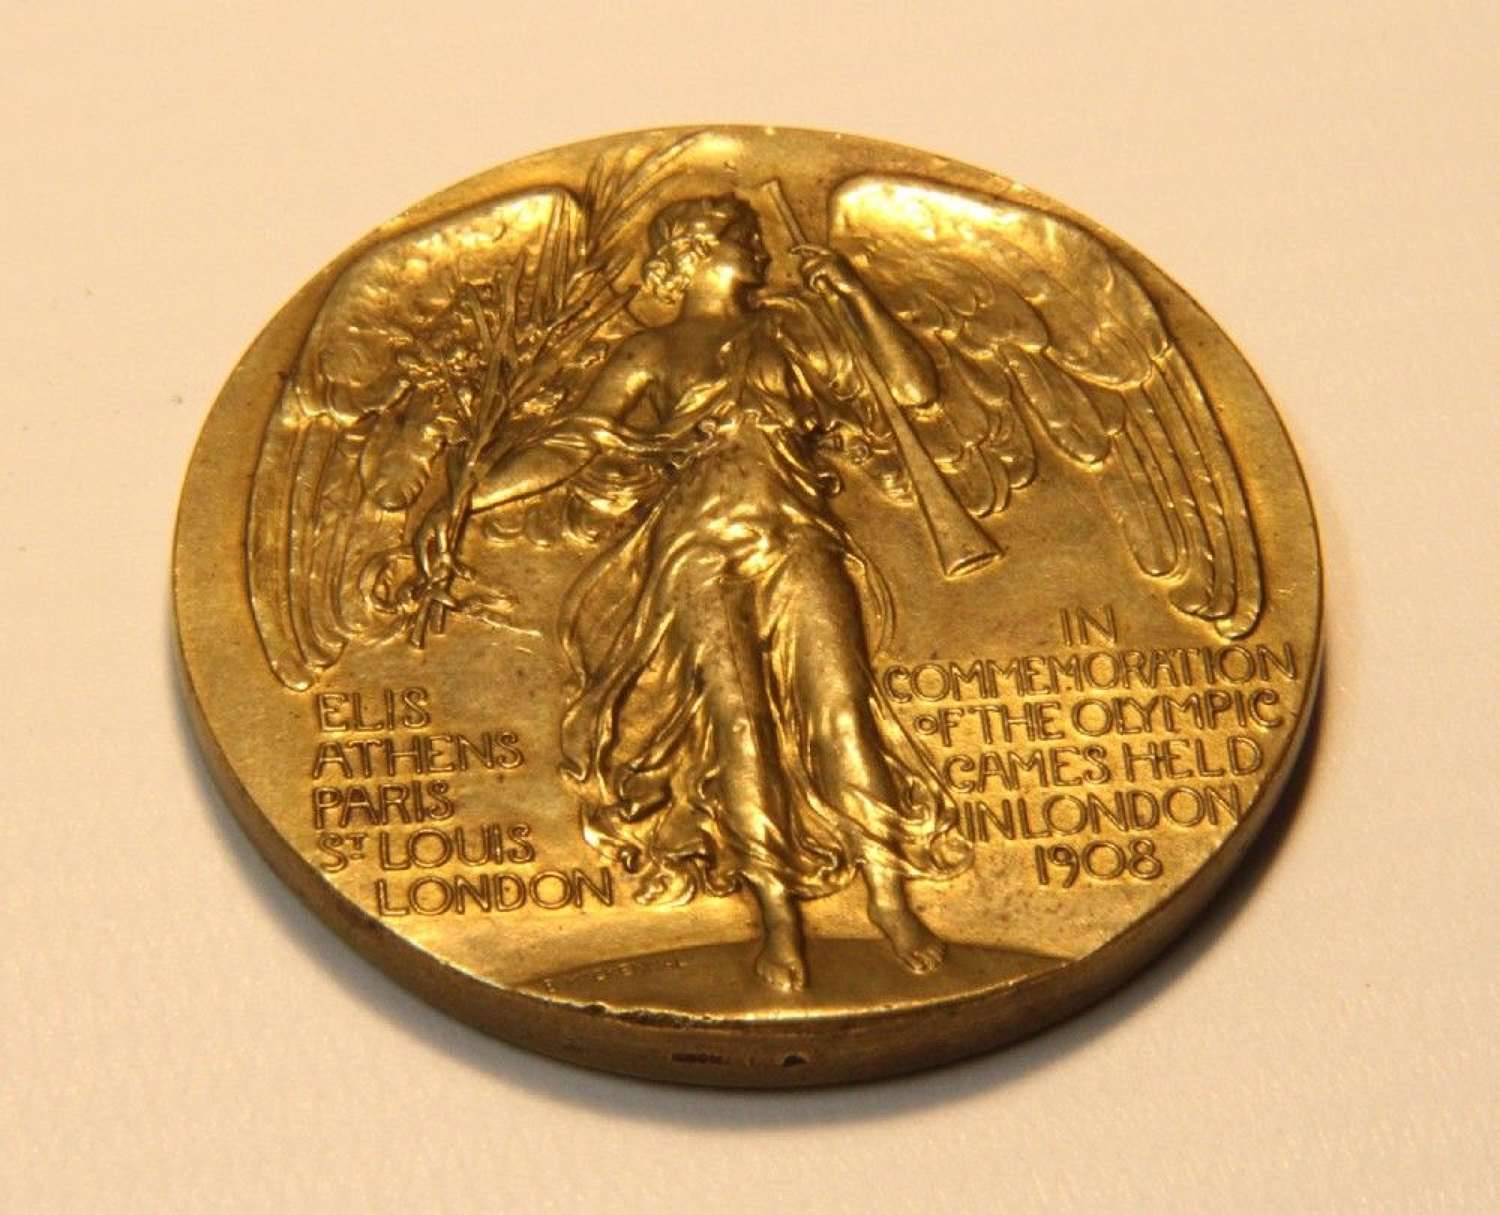 A Rare Official Medal For The 1908 London Olympics